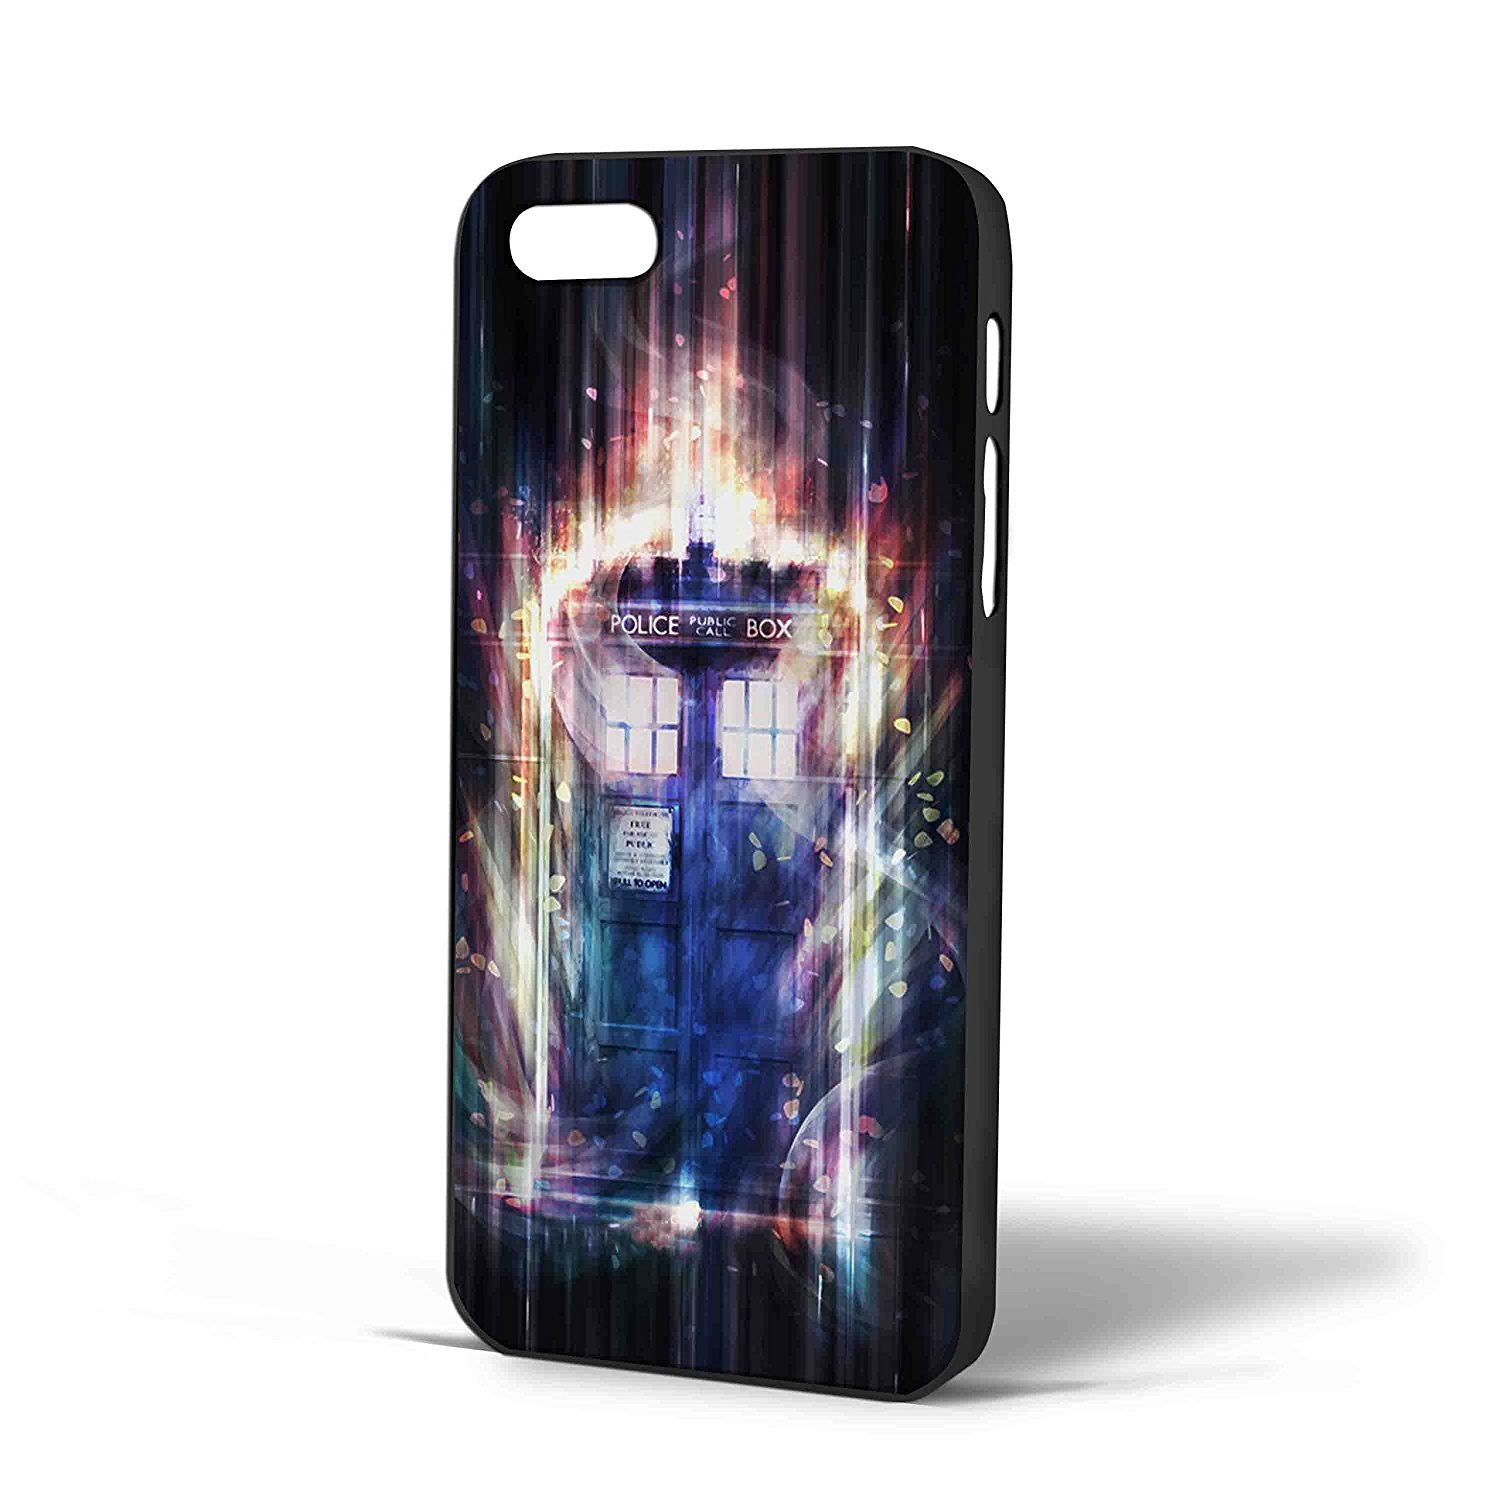 Ganma tardis Dr who fullcolor Case For iPhone Case ( Case For iPhone 5/5s White)